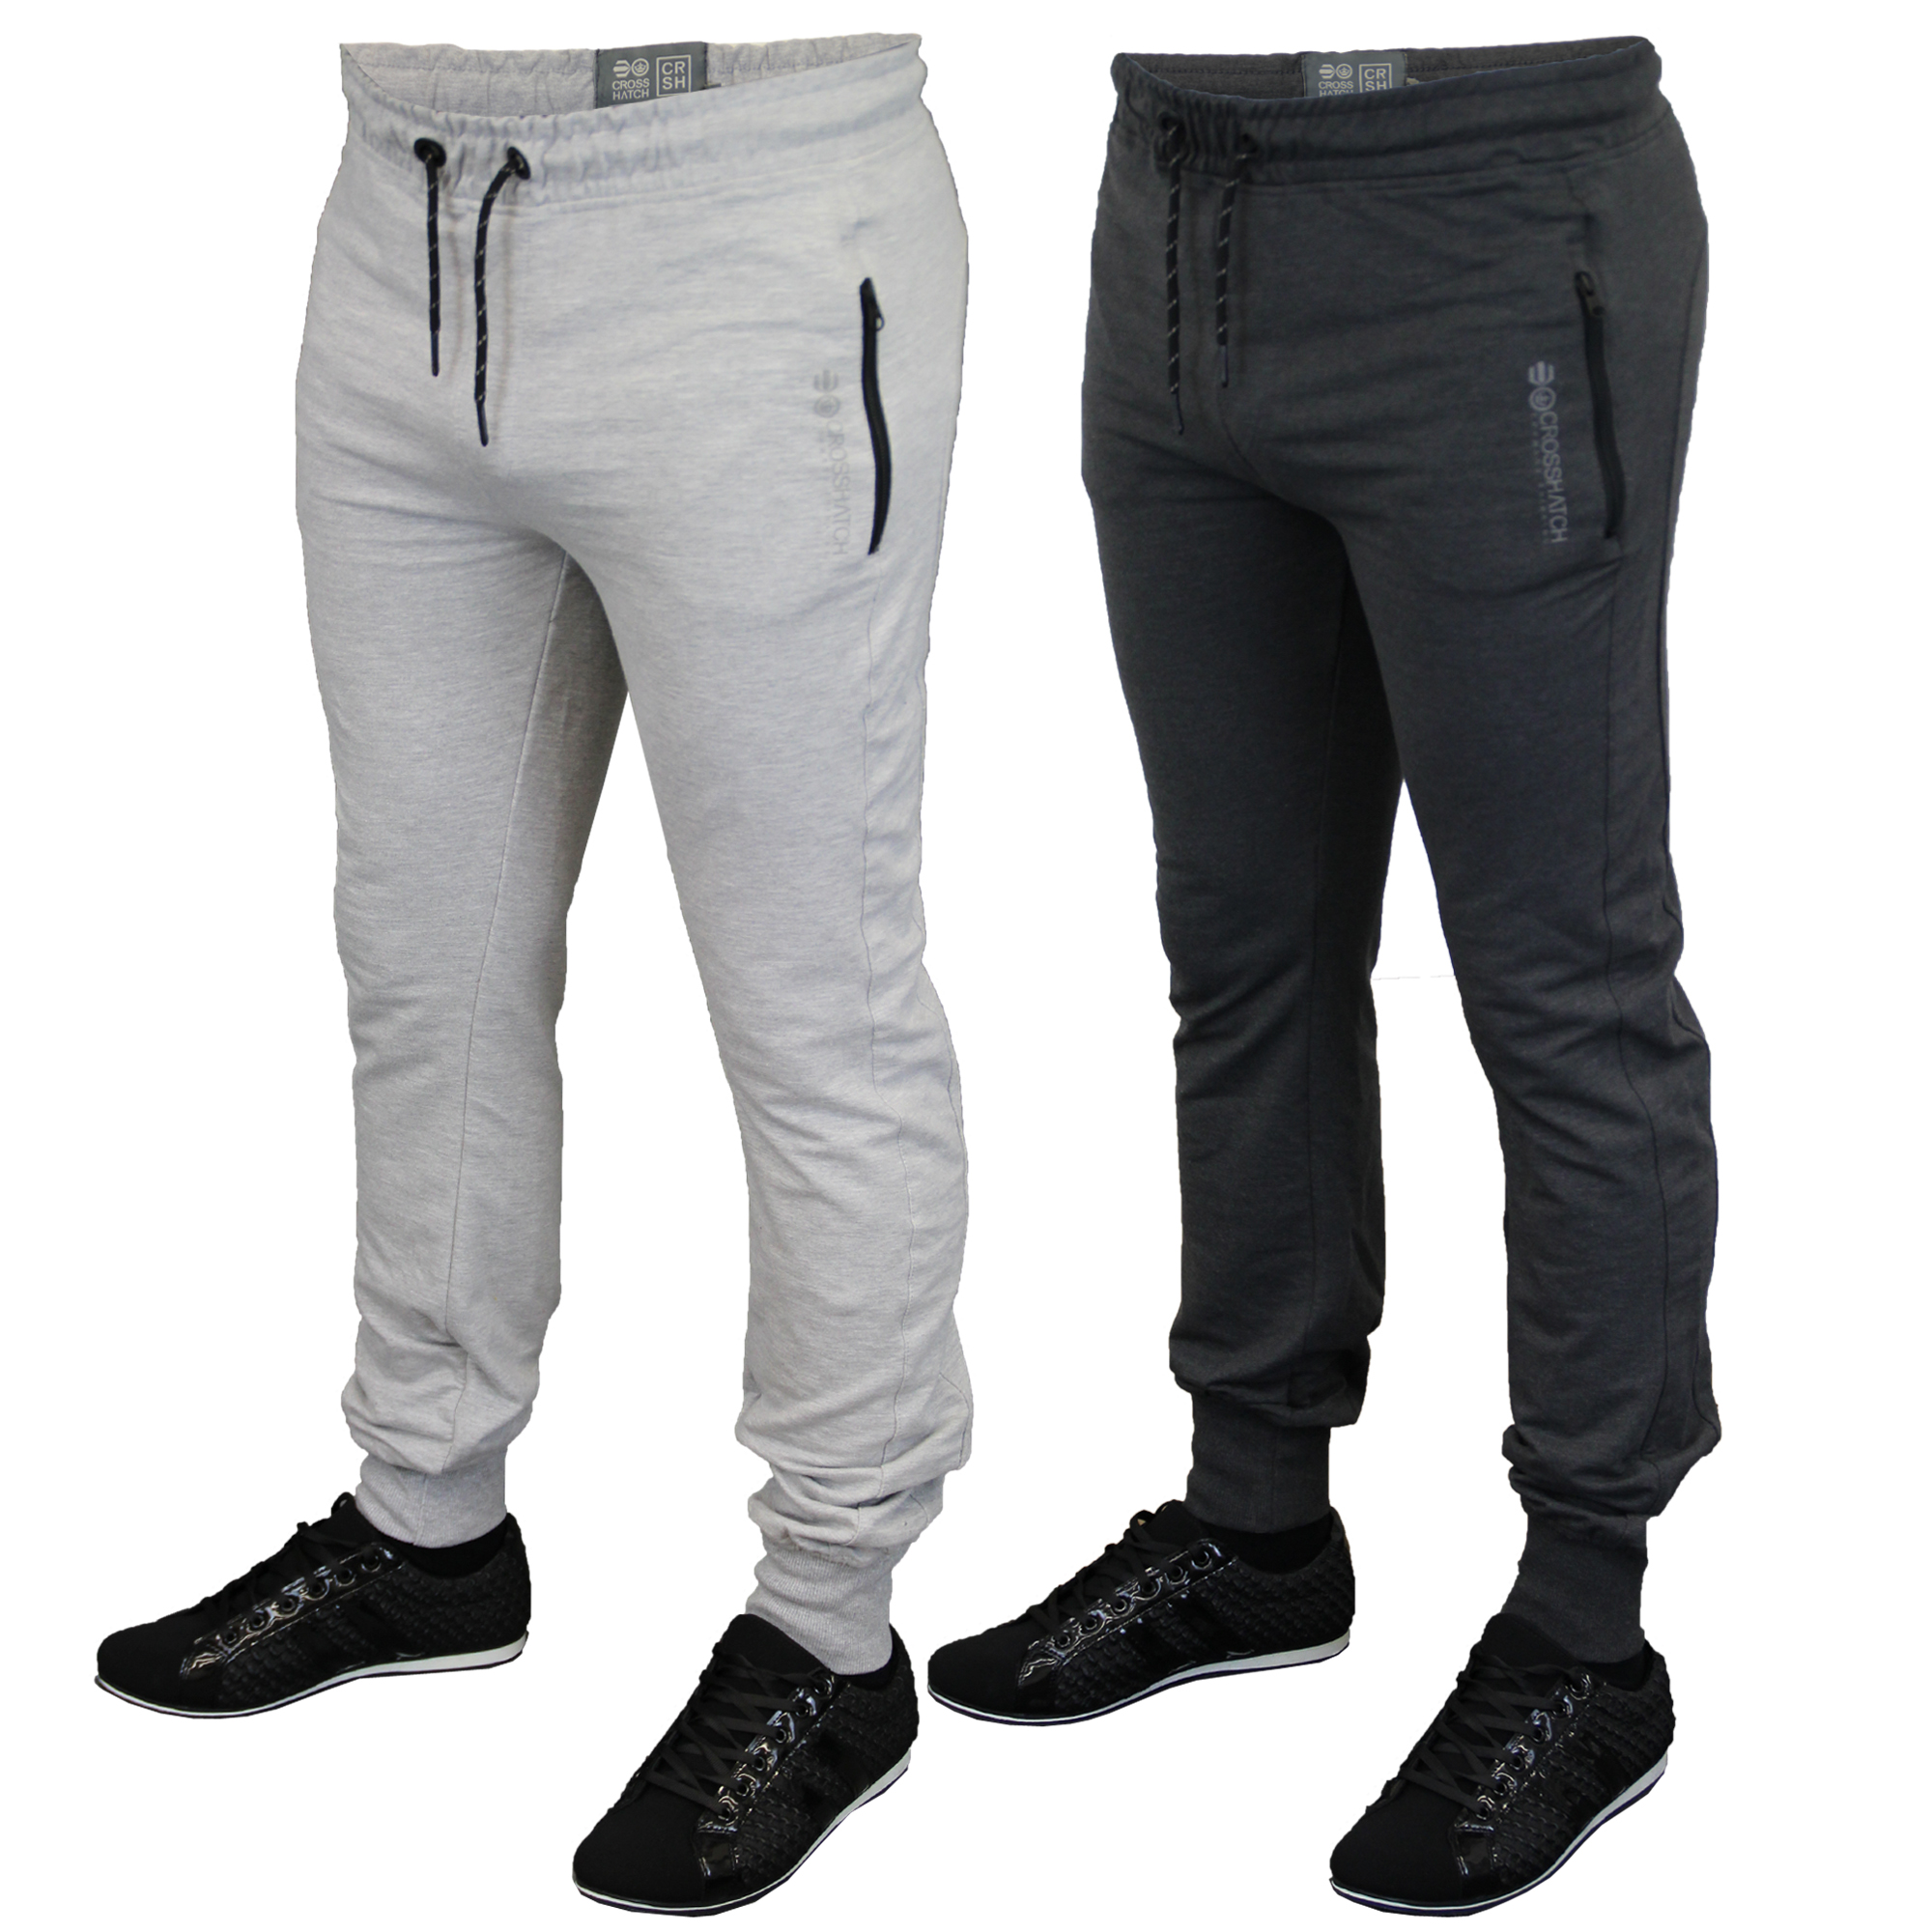 Mens Bottoms Crosshatch Jogging Pants Cuffed Trousers Running Gym Winter Fashion